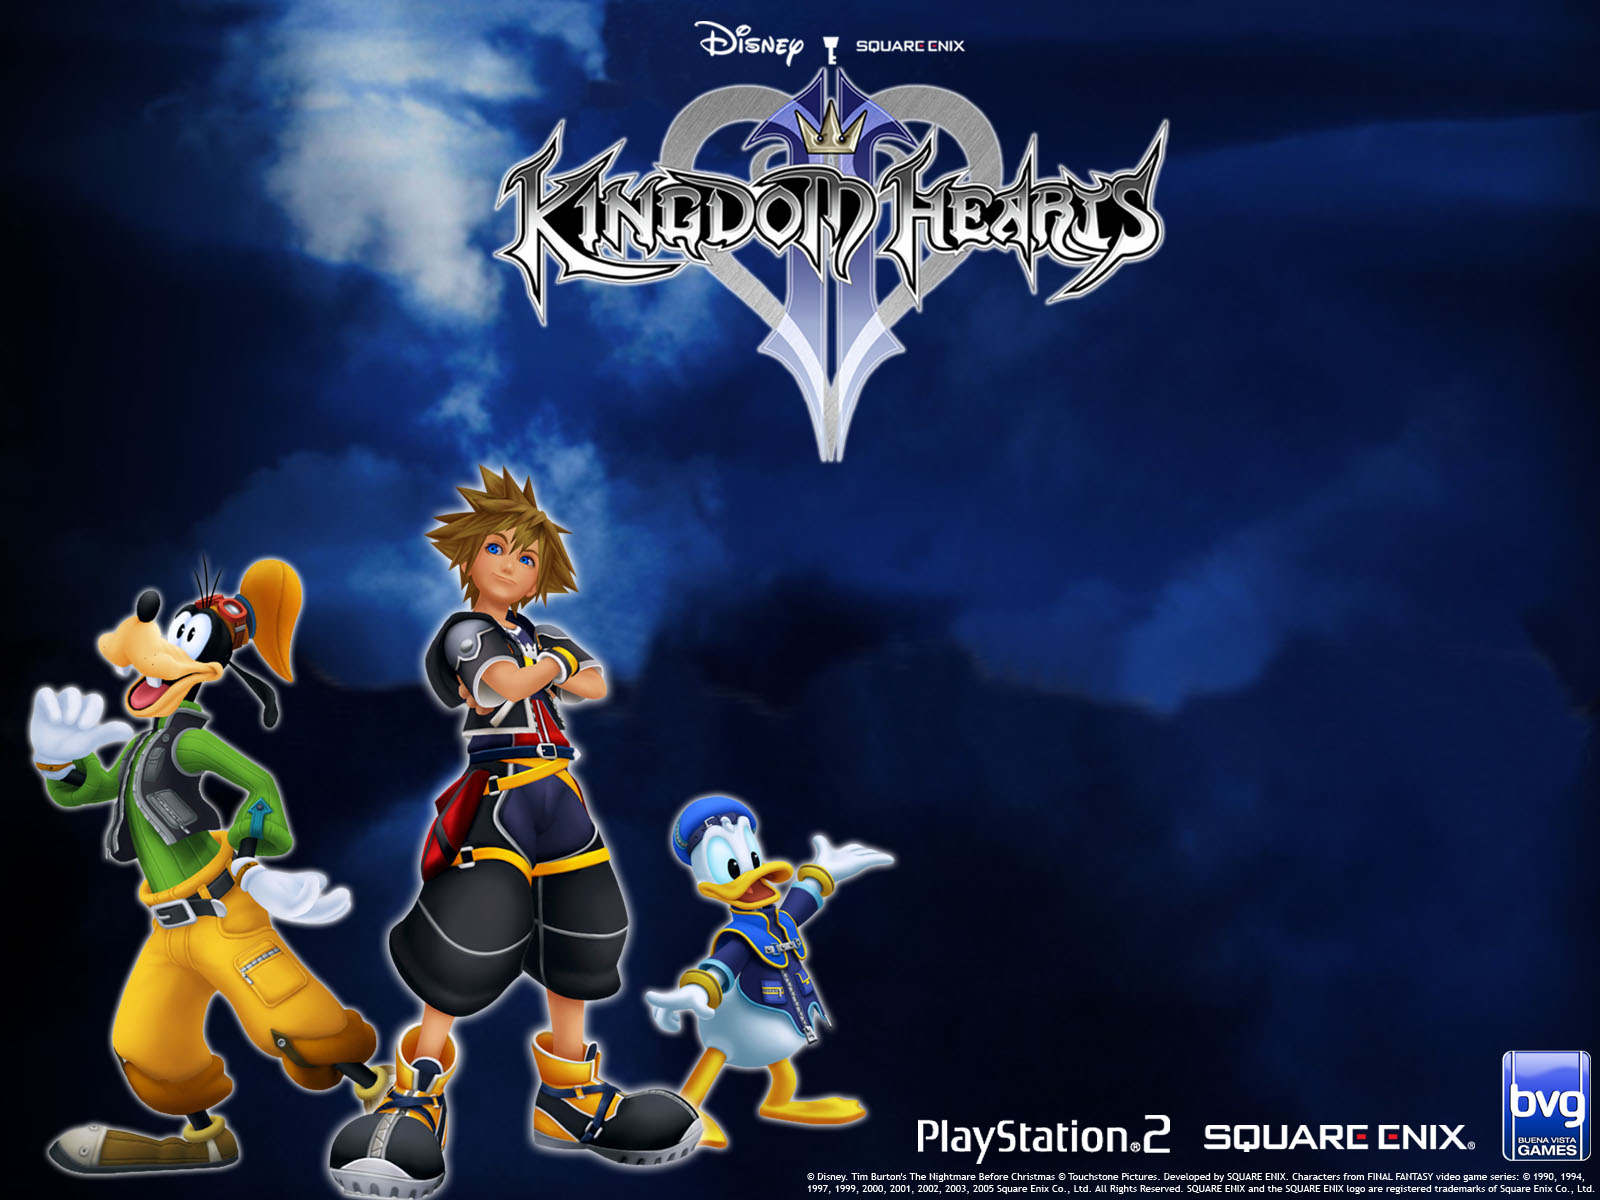 Kingdom Hearts Wallpaper and Background Image | 1600x1200 | ID:73596 ...